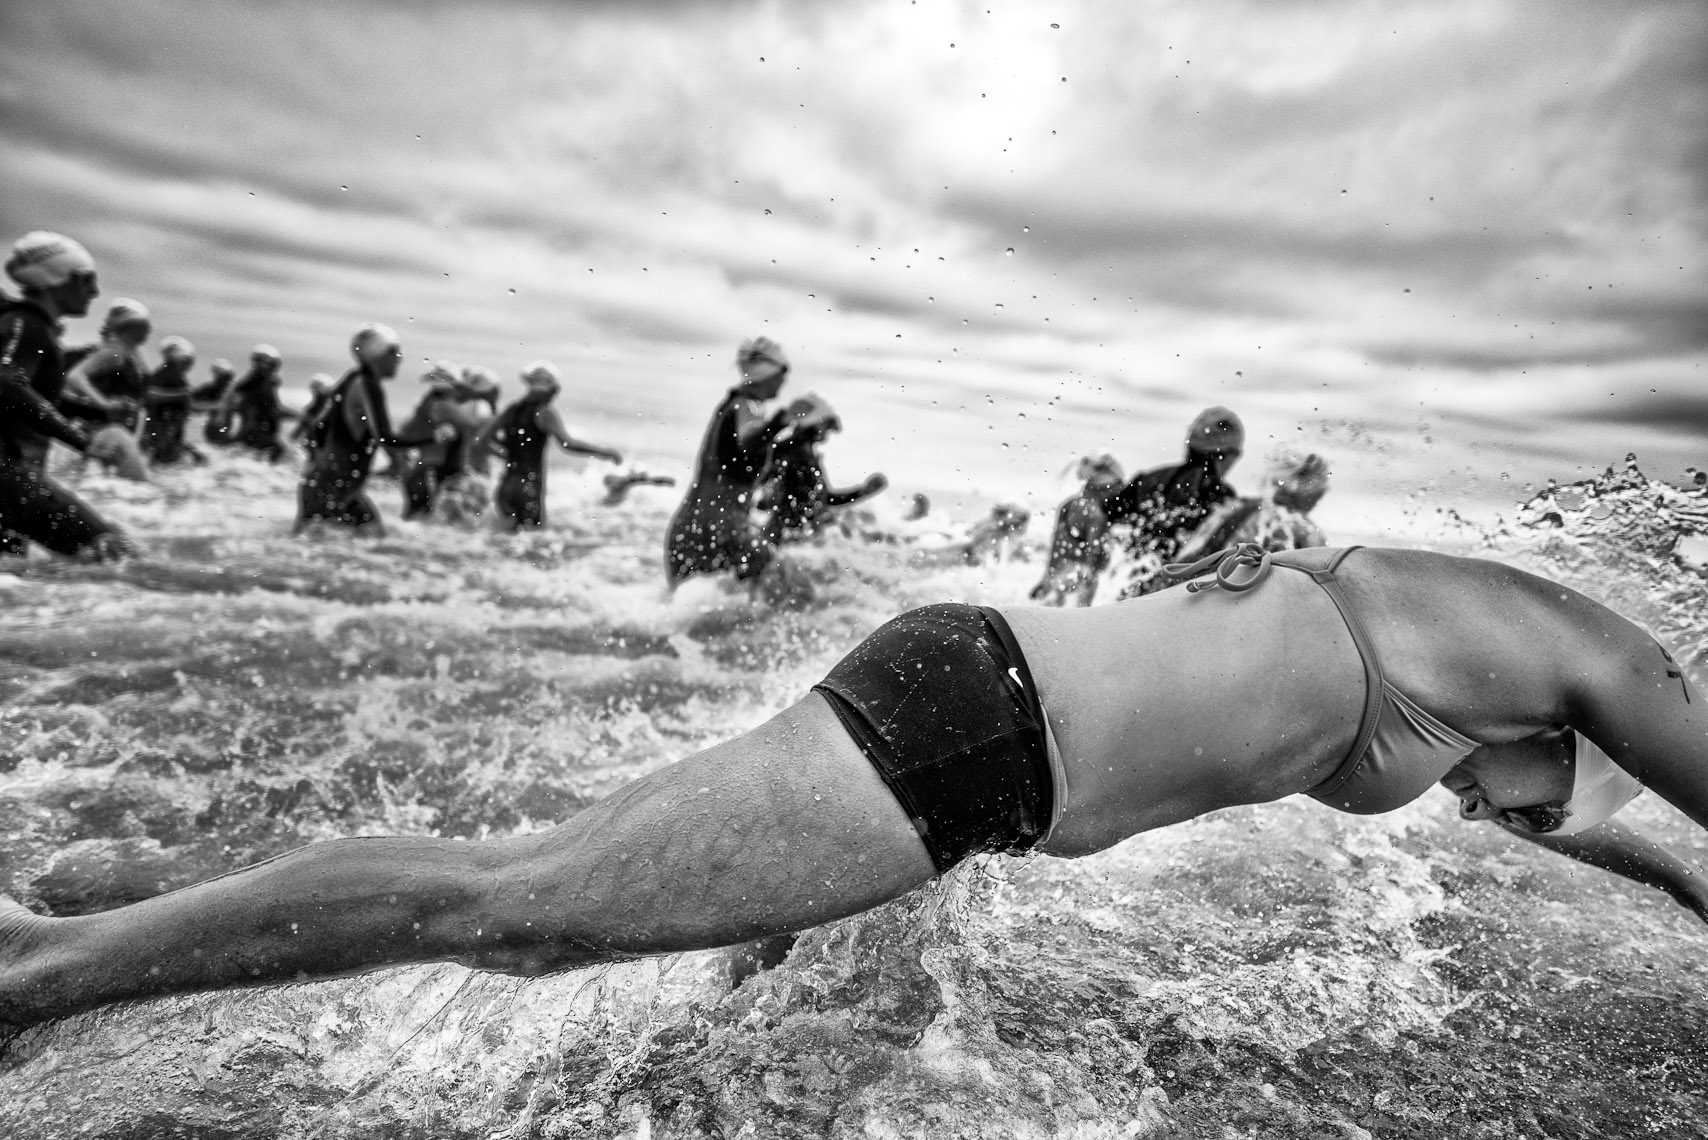 Kevin Steele - a woman dives into the ocean at a triathlon